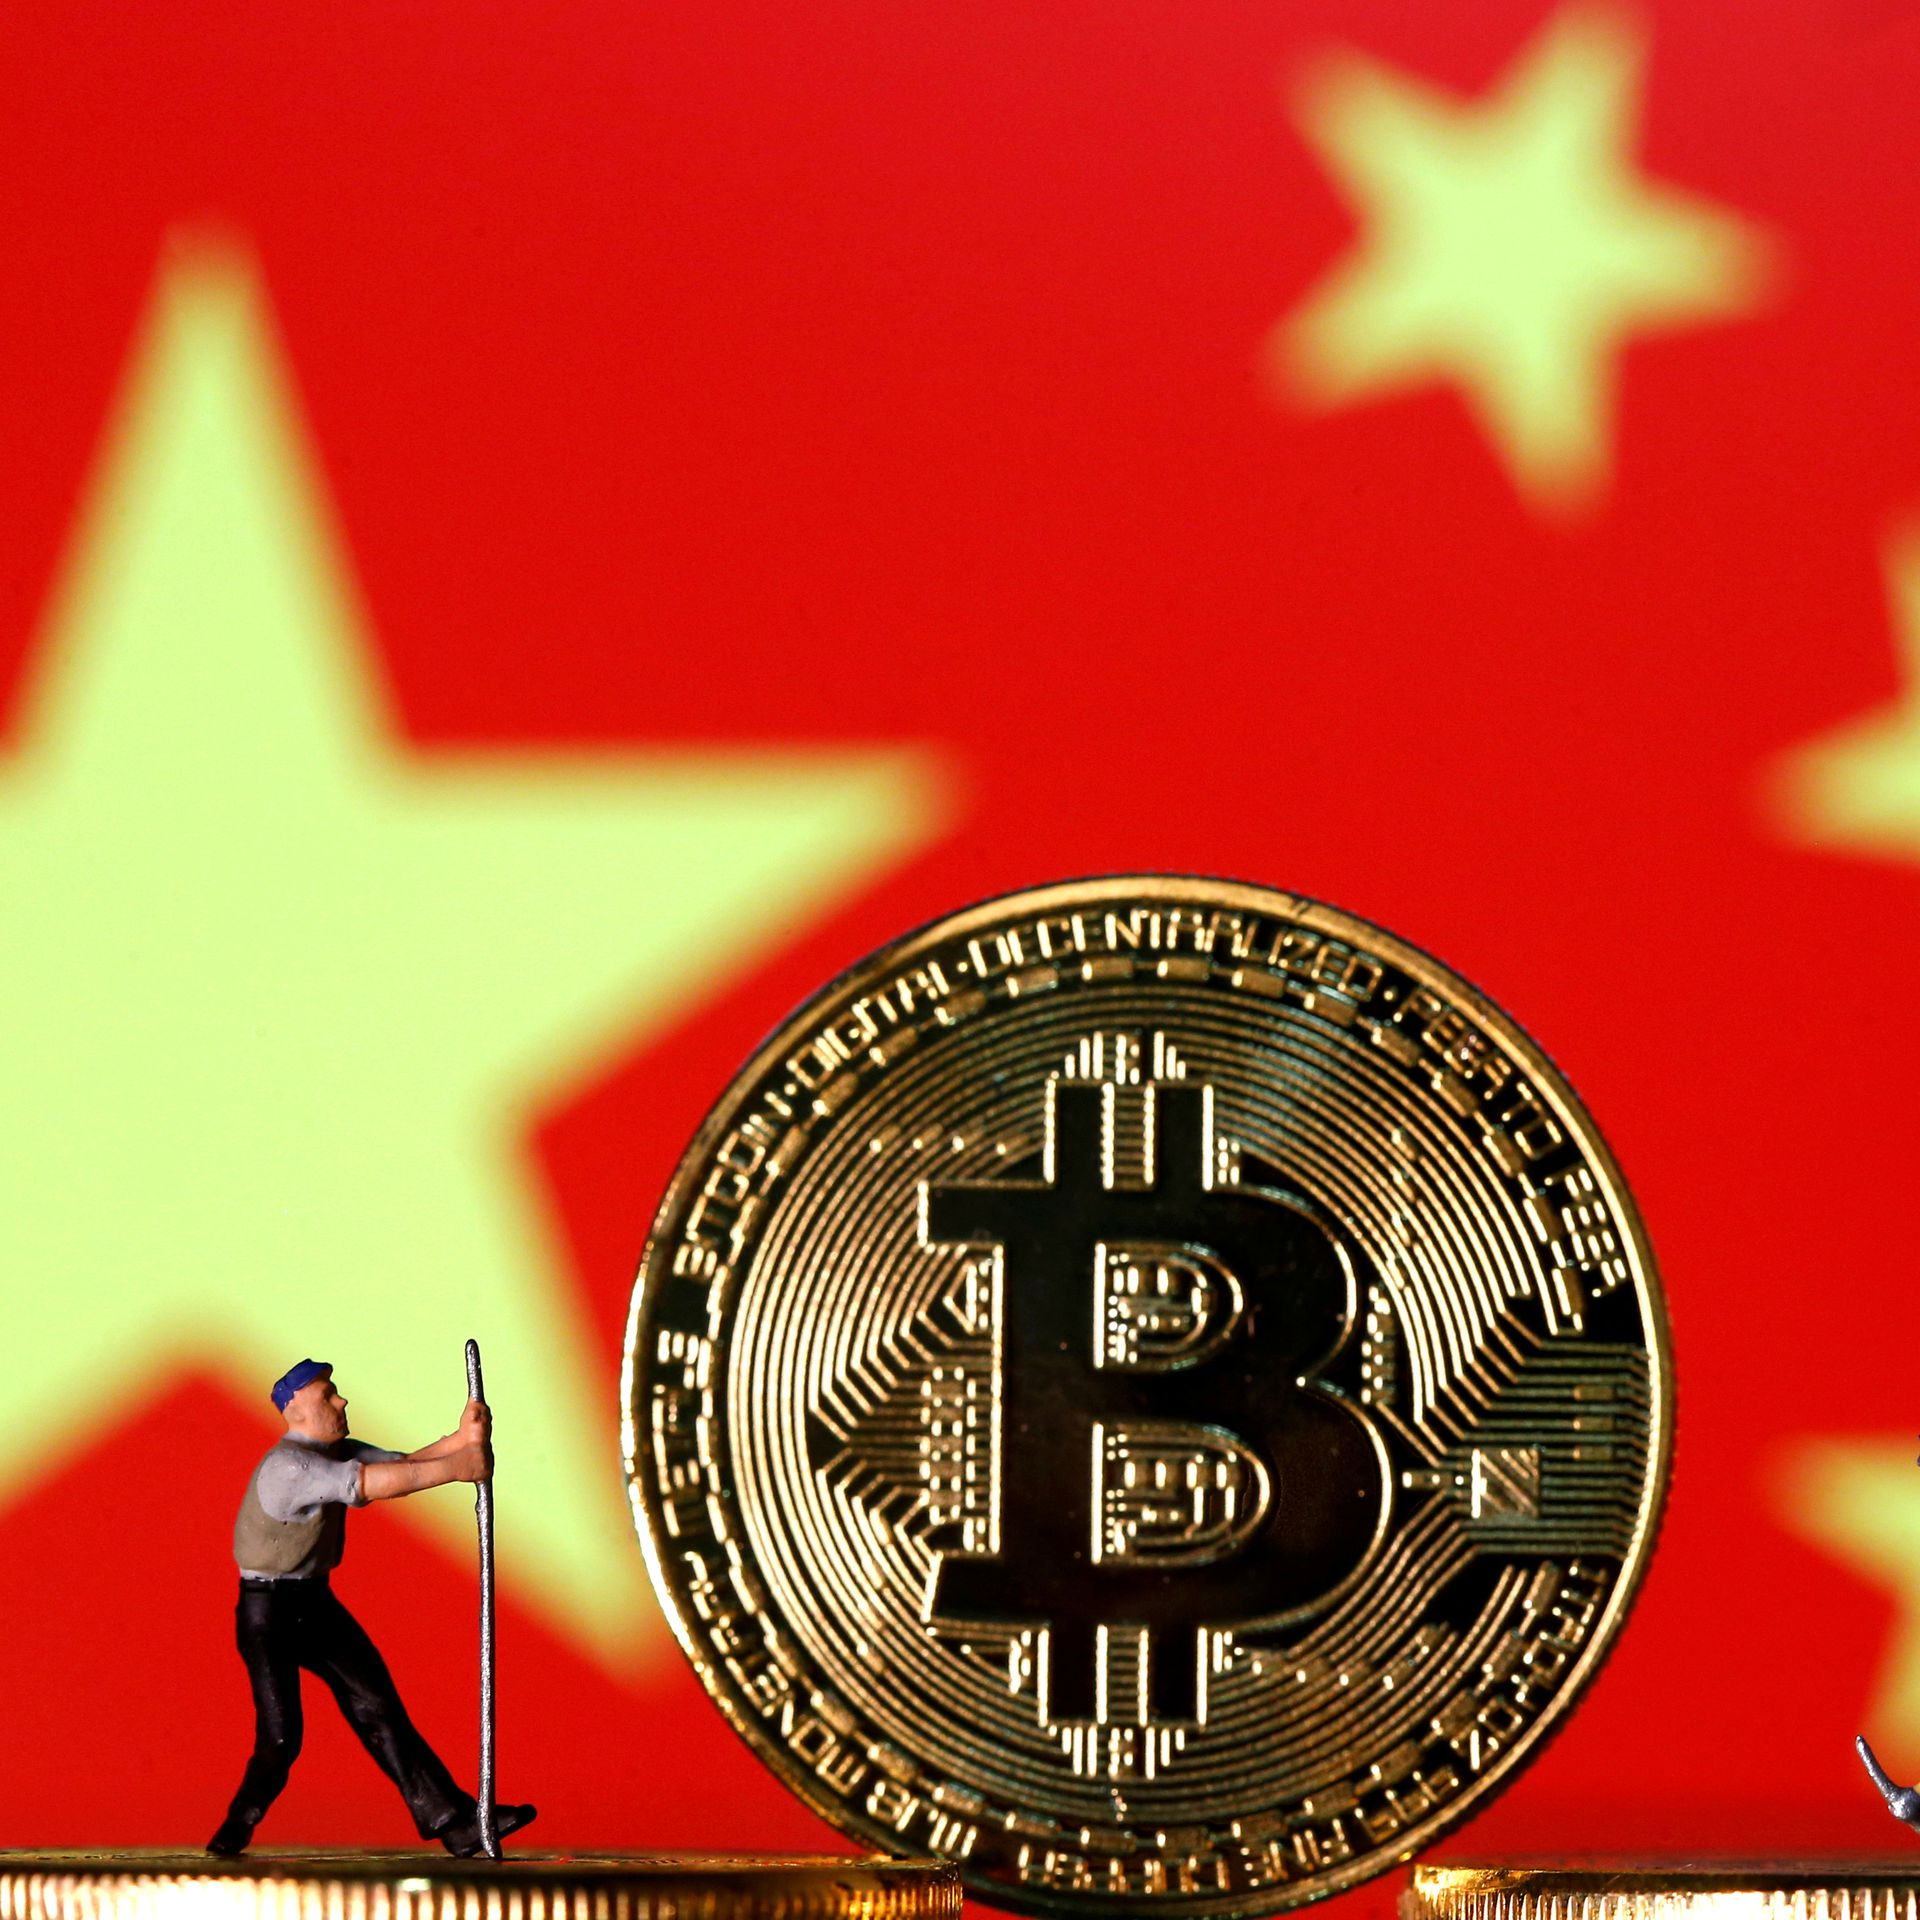 China vows to crack down on bitcoin mining, trading activities | Reuters